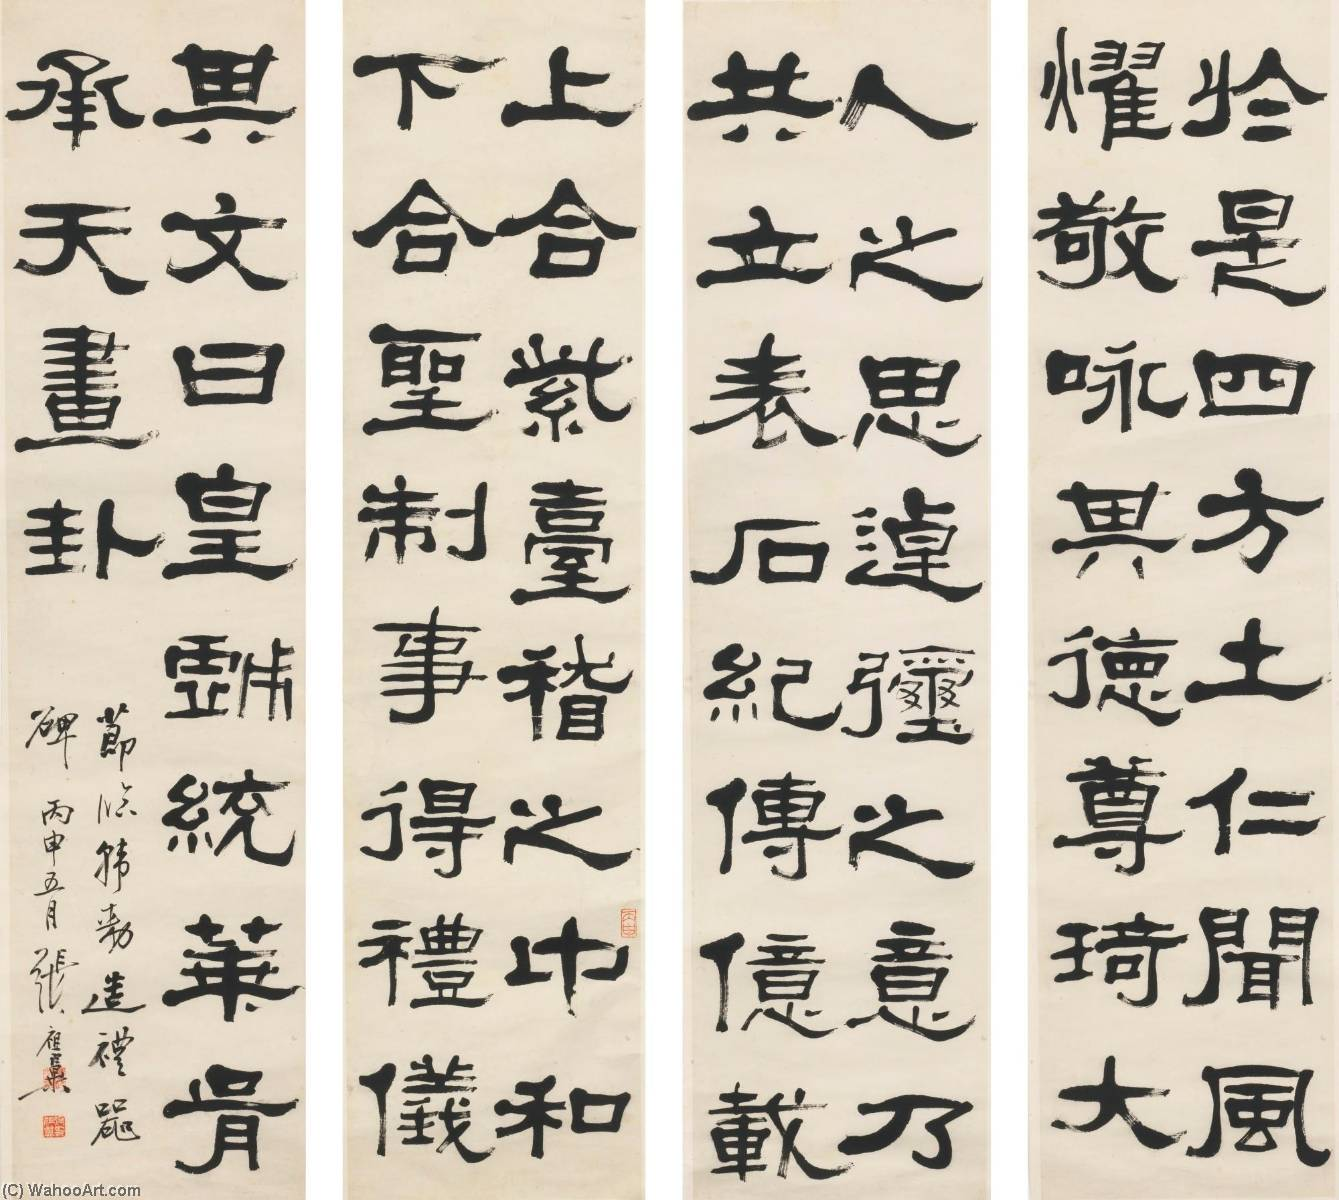 Wikioo.org - The Encyclopedia of Fine Arts - Painting, Artwork by Zhang Zuyi - CALLIGRAPHY IN CLERICAL SCRIPT